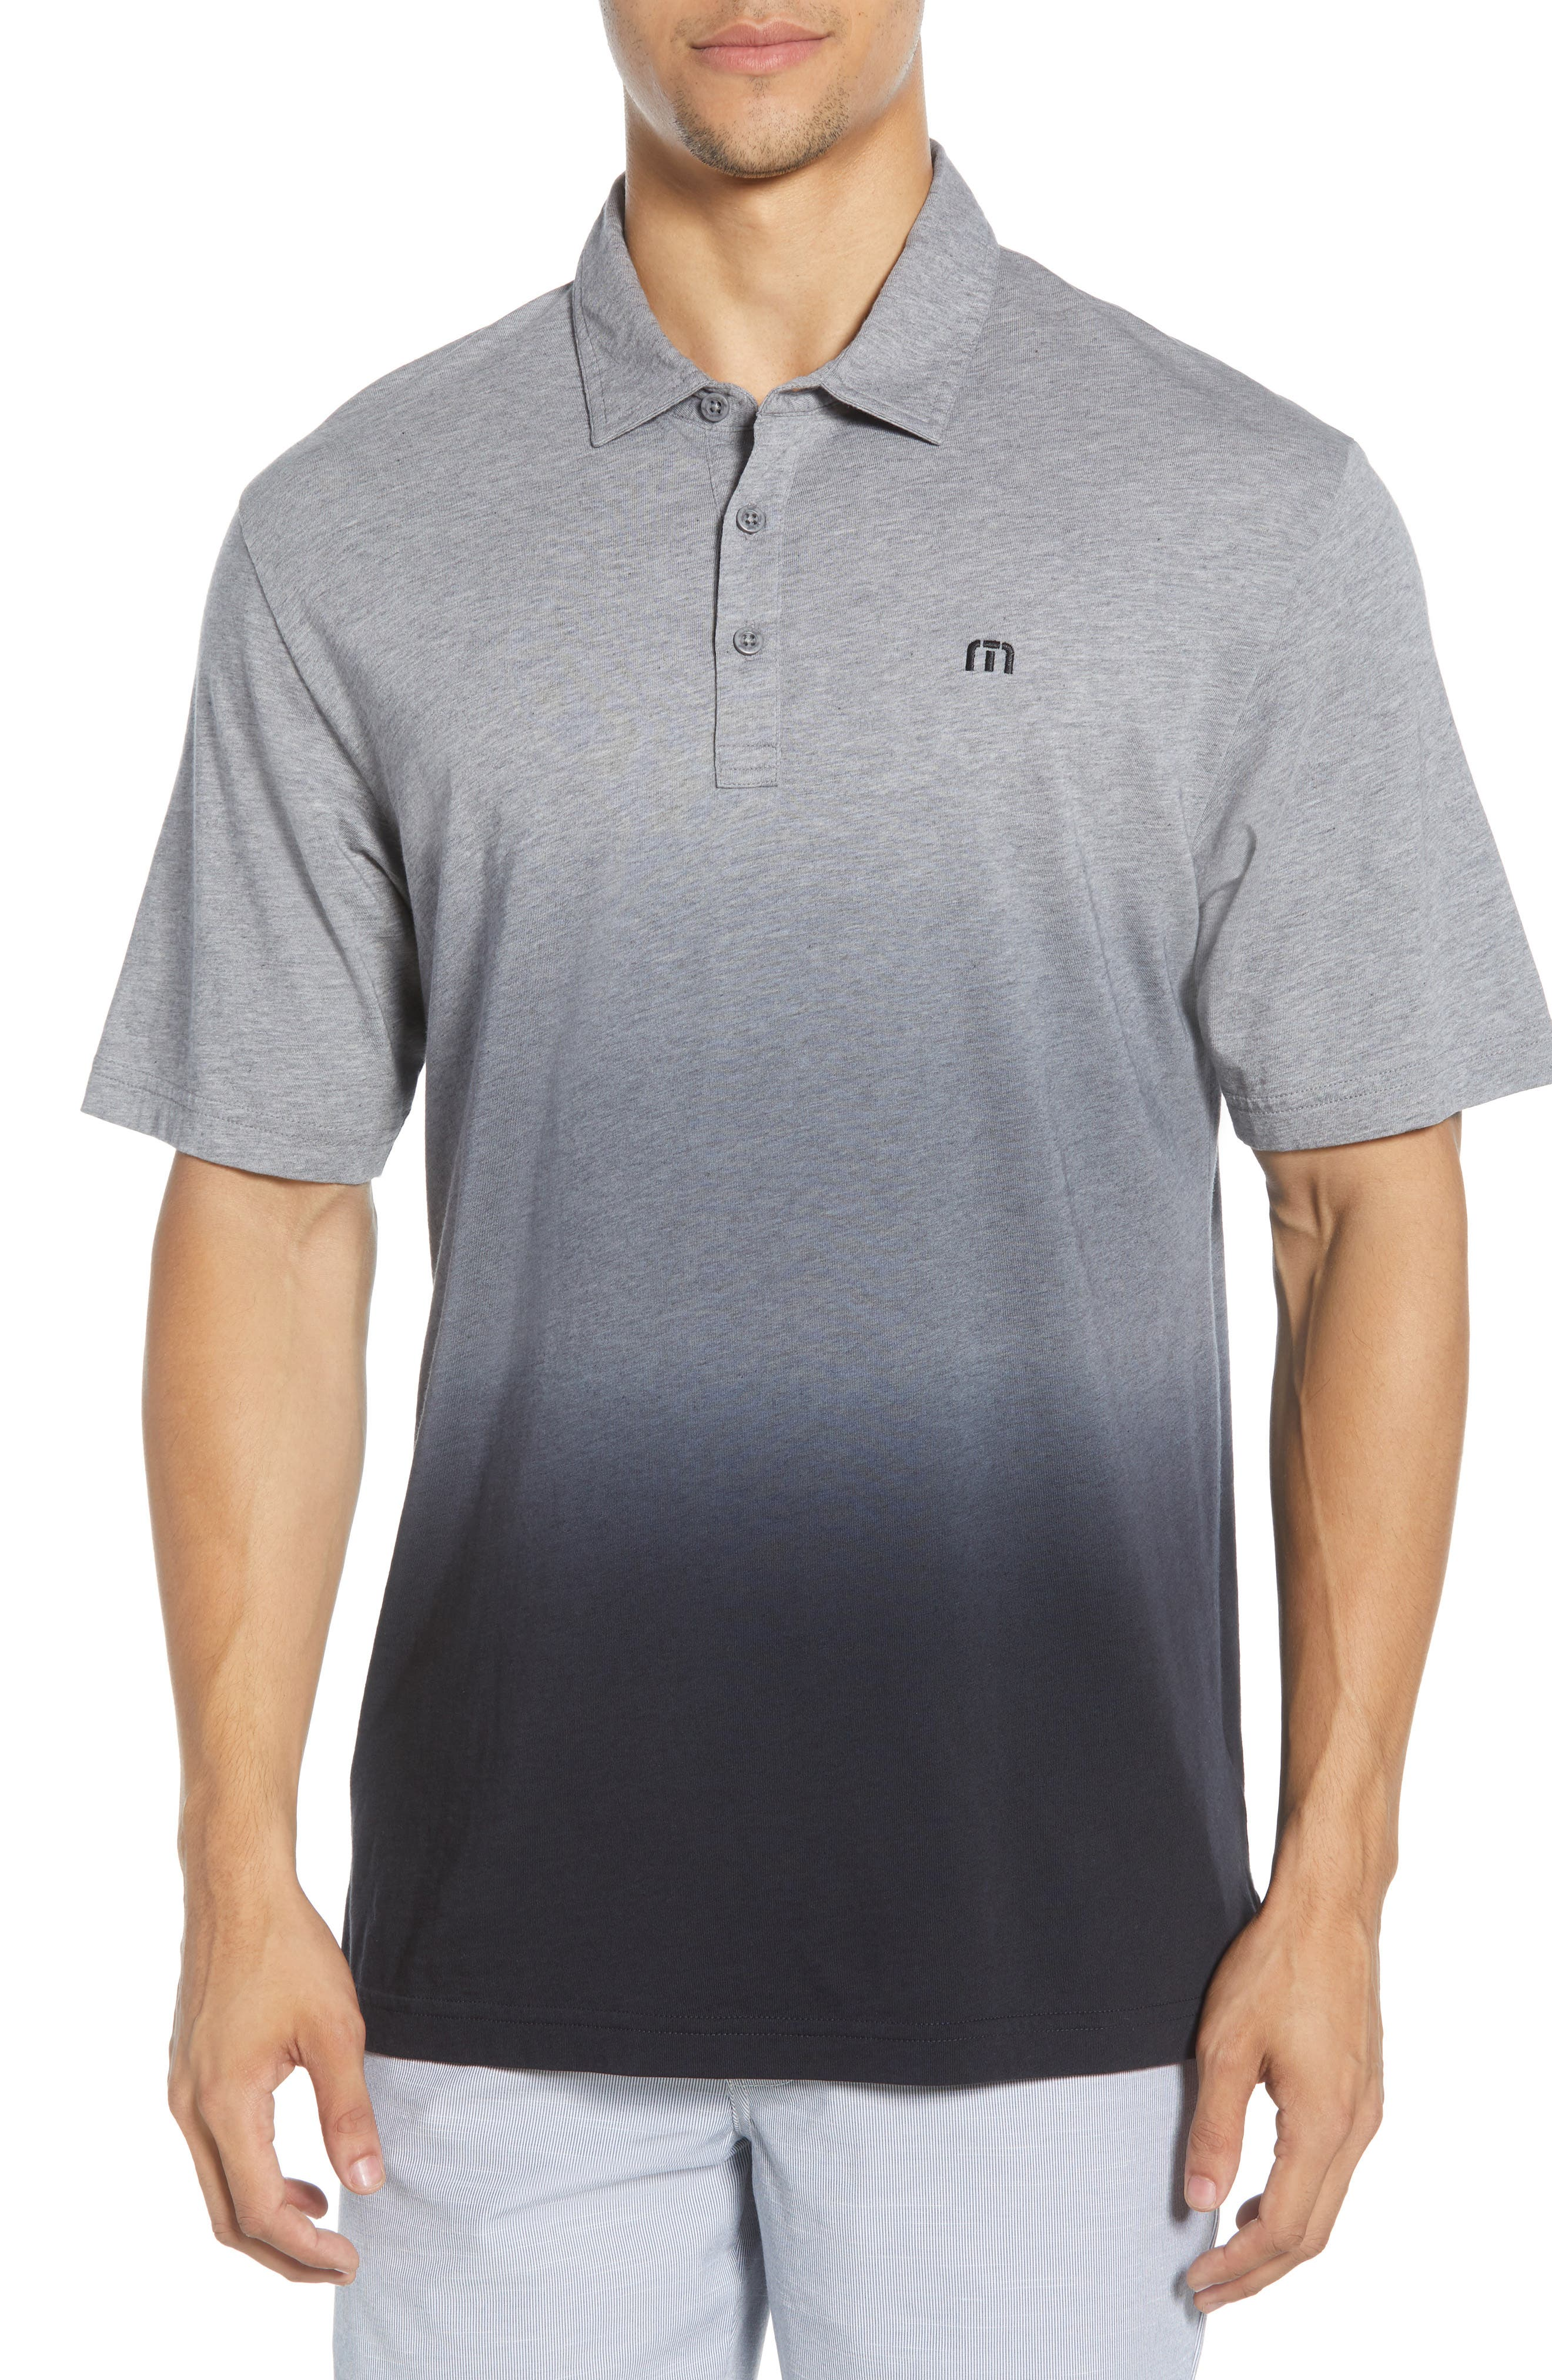 Image of TRAVIS MATHEW Secret Ingredient Ombre Printed Polo